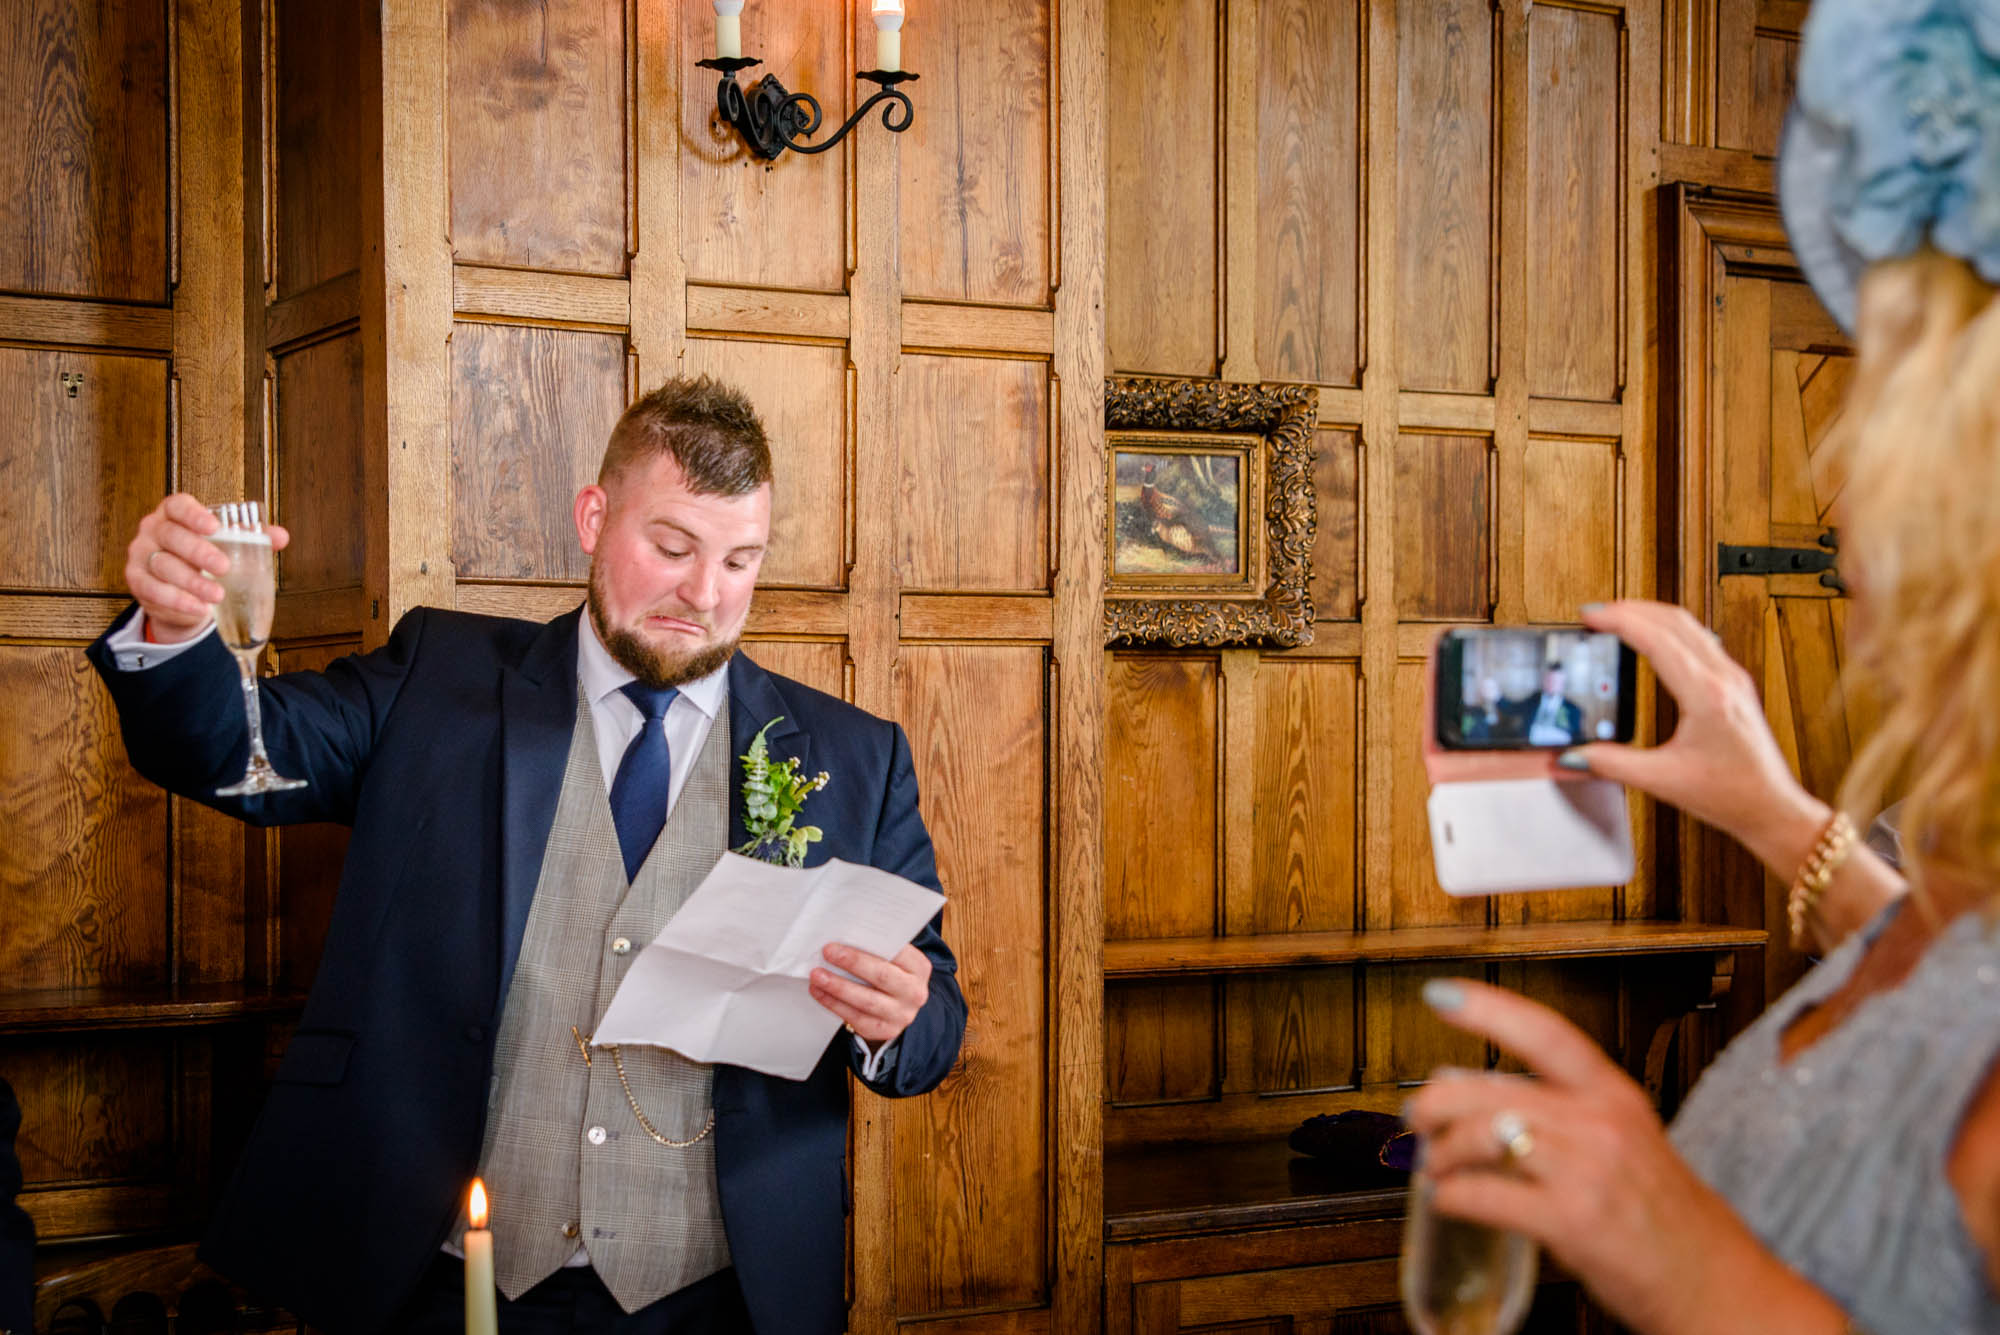 Bestman pulling a face as he doesn't know who to toast for